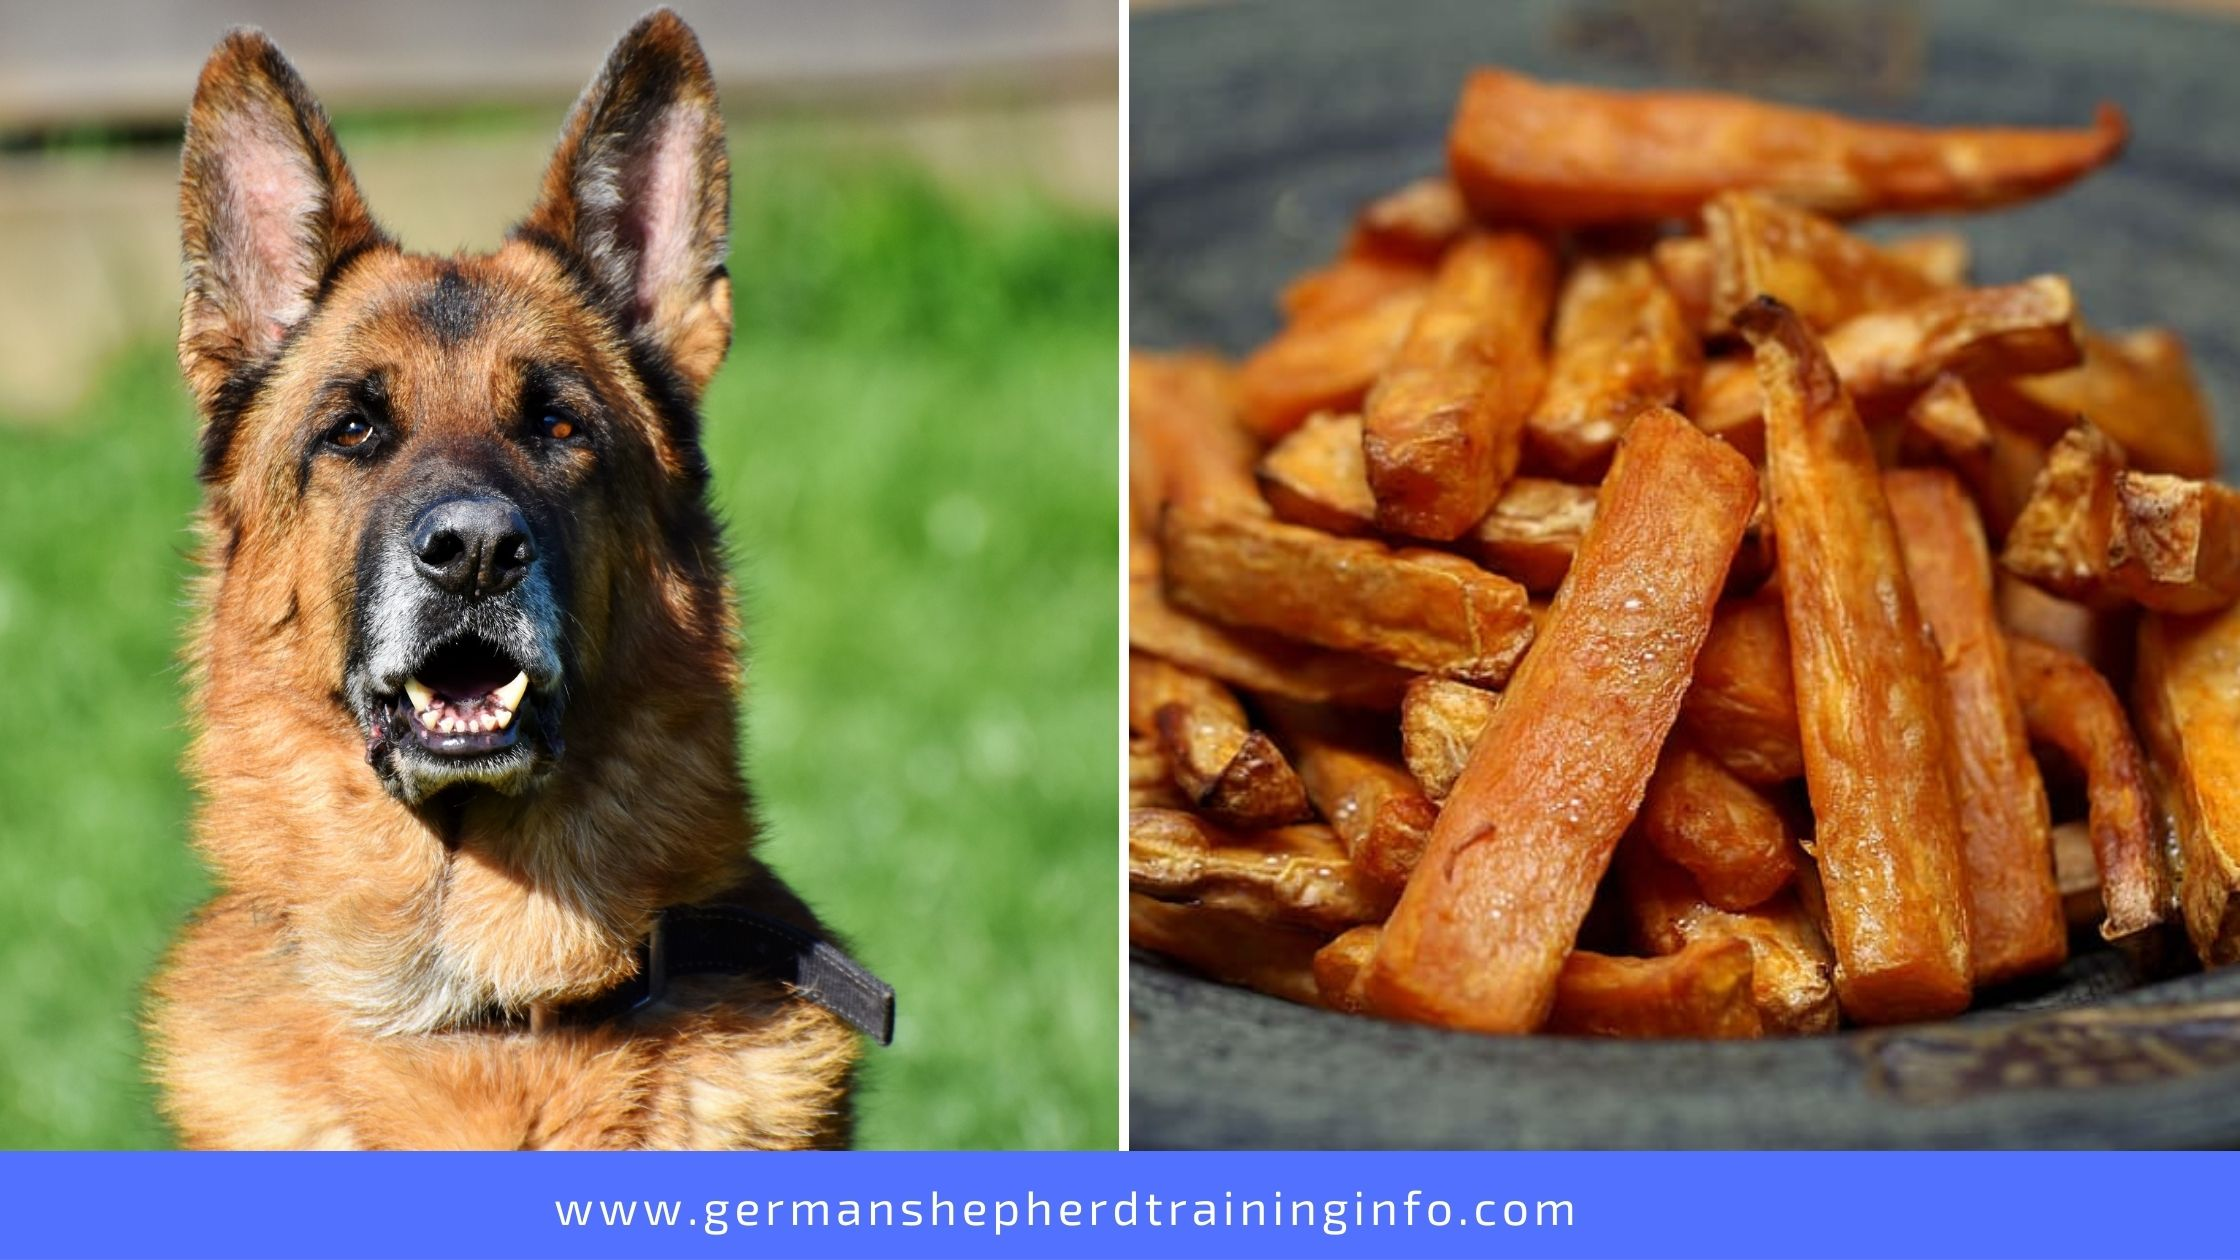 Can Dogs Eat Sweet Potato Fries